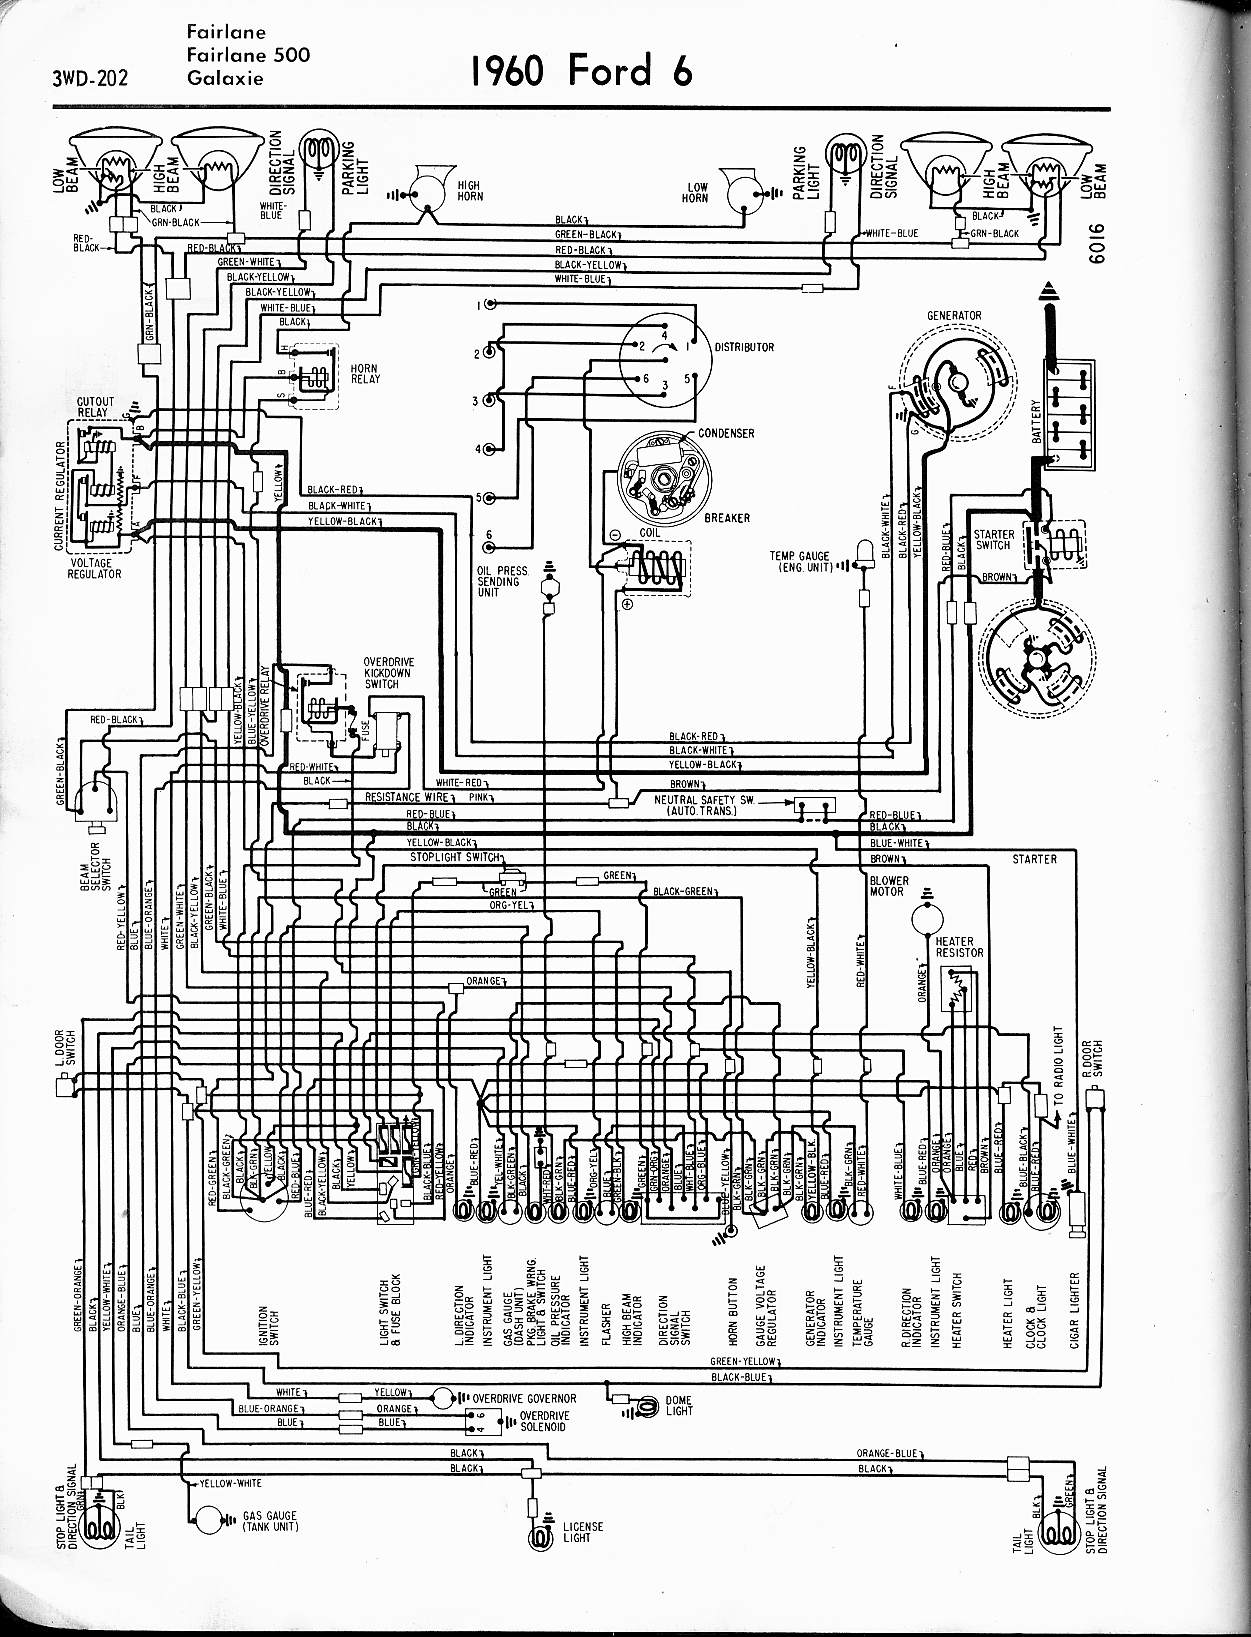 1964 fiat 500 engine diagram